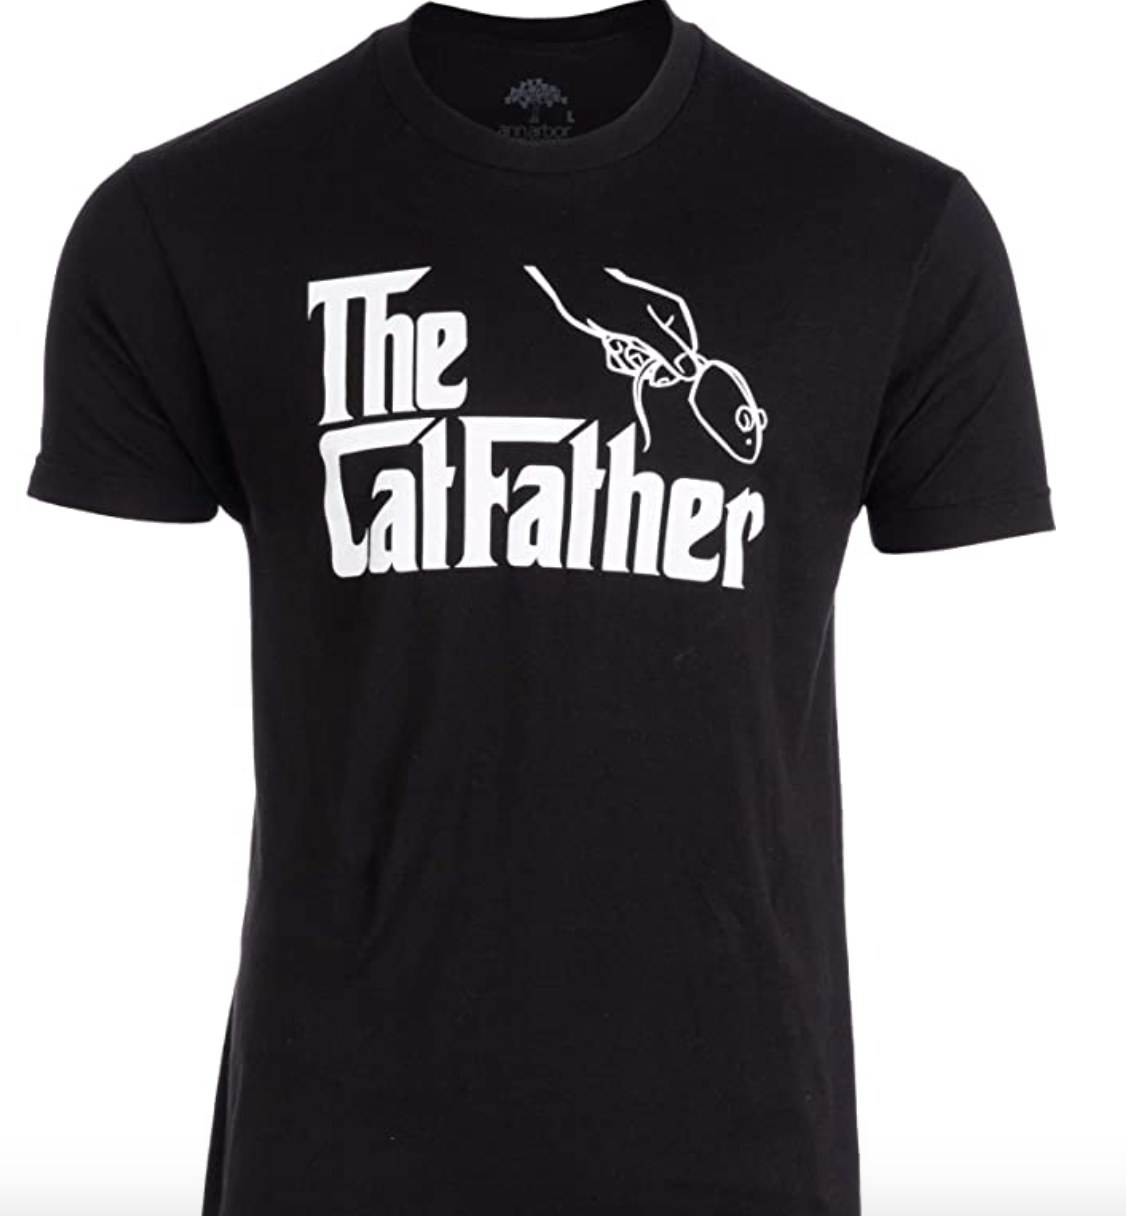 "a black tee that says ""the catfather"""